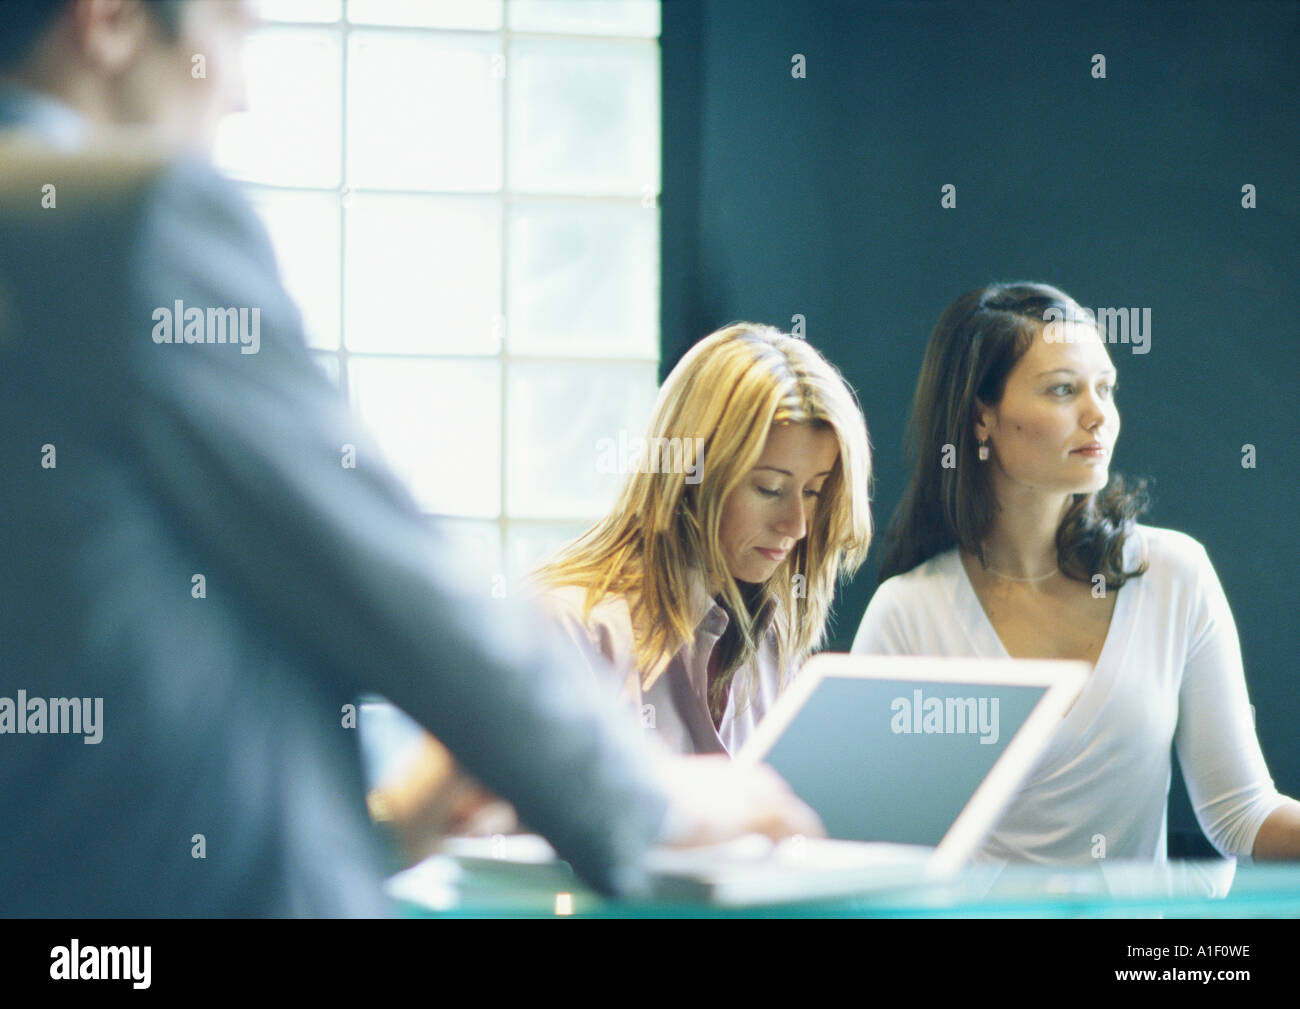 Two women and man in office - Stock Image